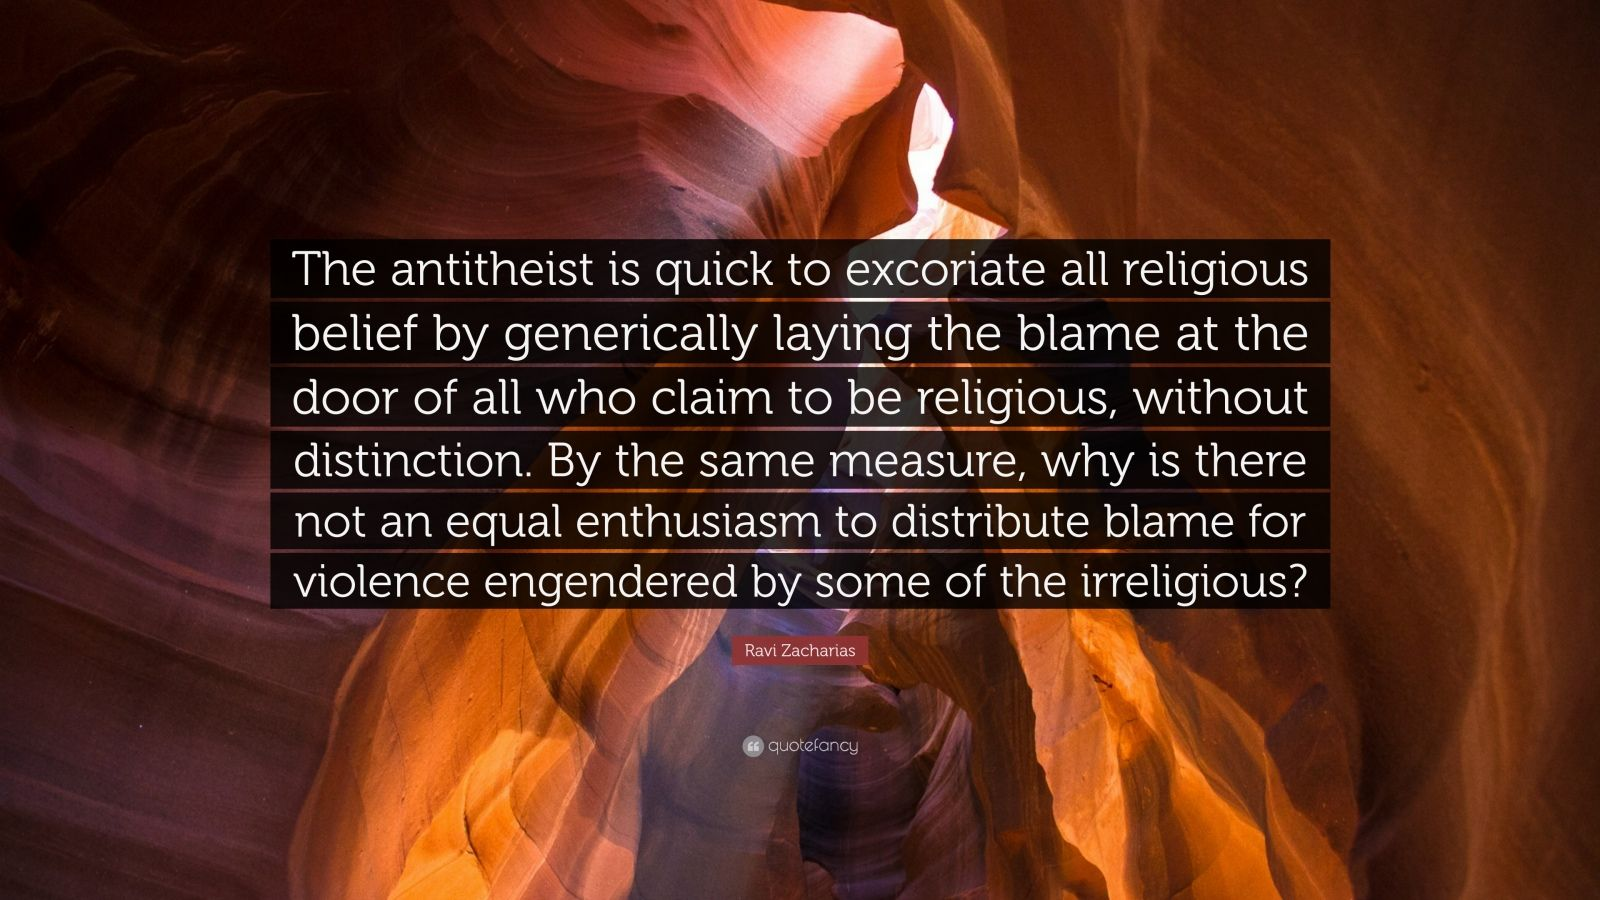 "Ravi Zacharias Quote: ""The antitheist is quick to excoriate all religious belief by generically laying the blame at the door of all who claim to be religious, without distinction. By the same measure, why is there not an equal enthusiasm to distribute blame for violence engendered by some of the irreligious?"""